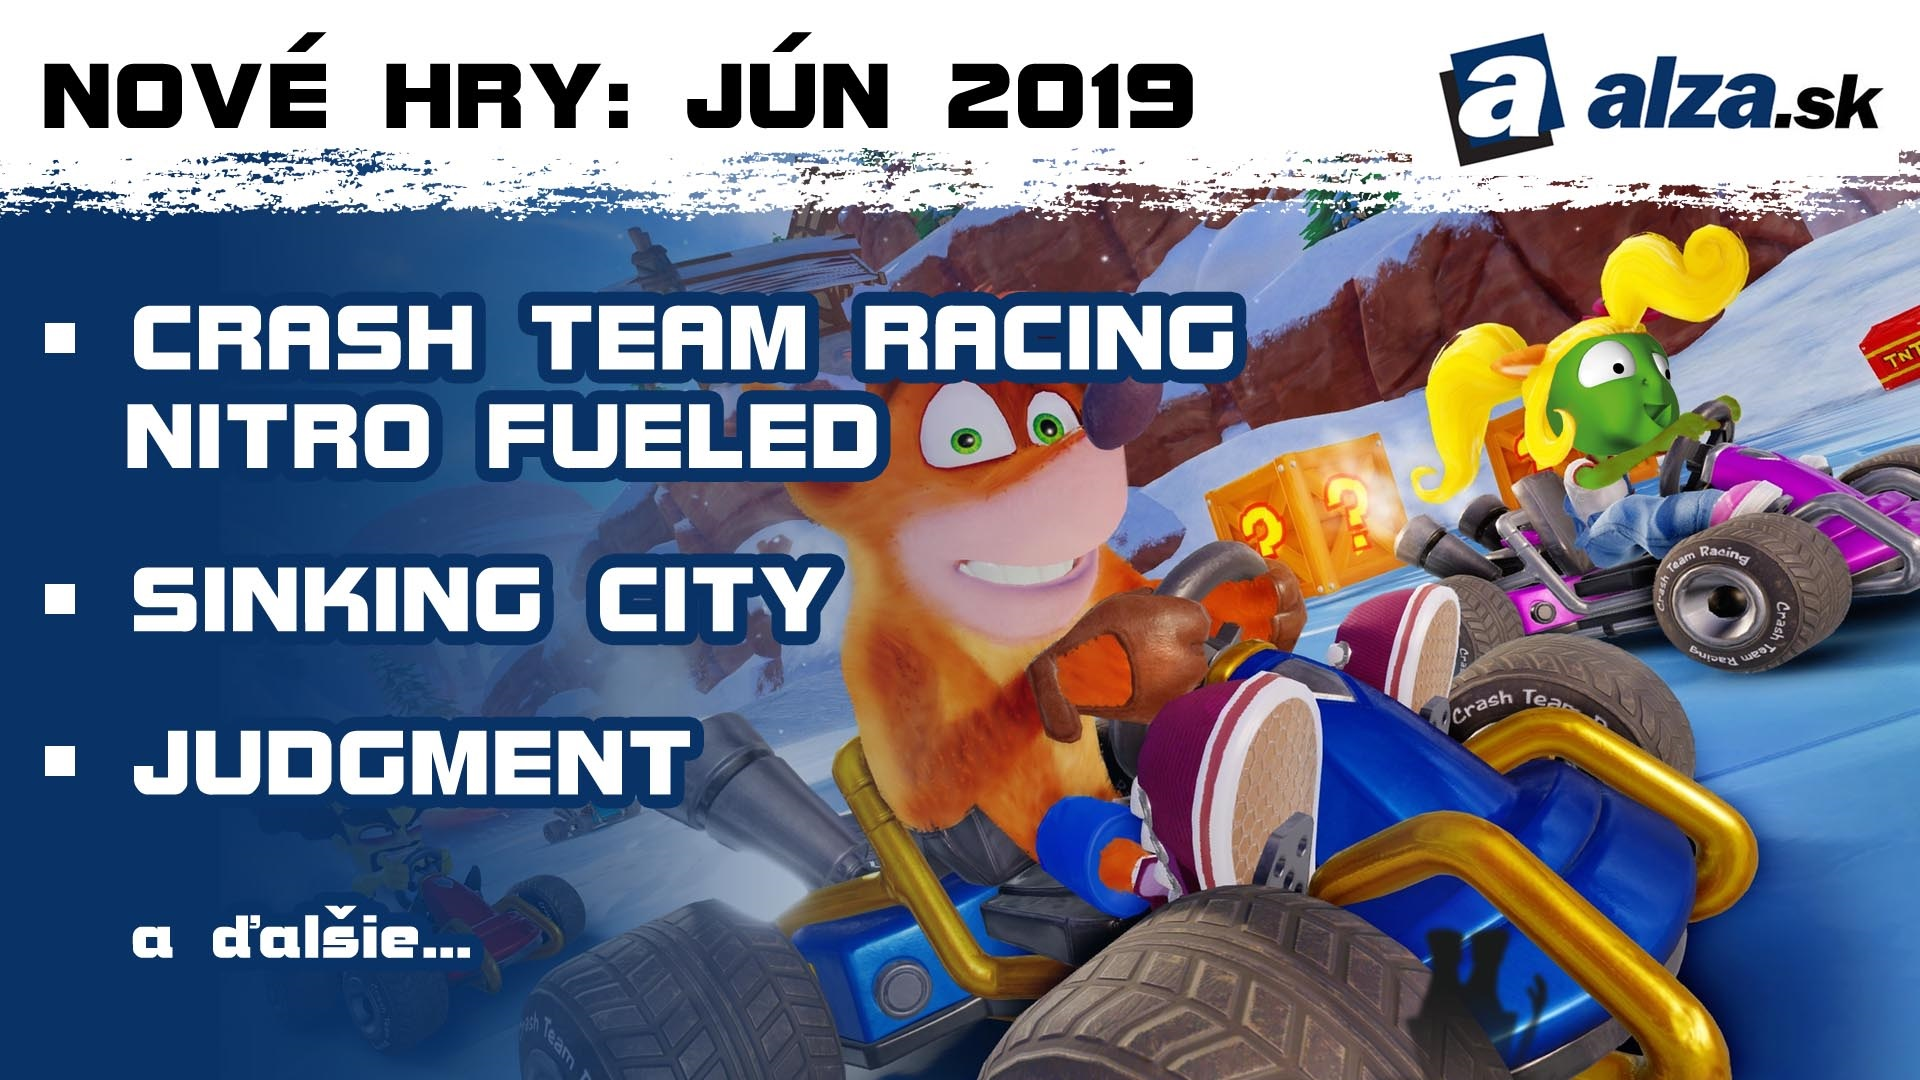 4db29ce51 Nové hry: jún 2019 – Crash Team Racing Nitro Fueled